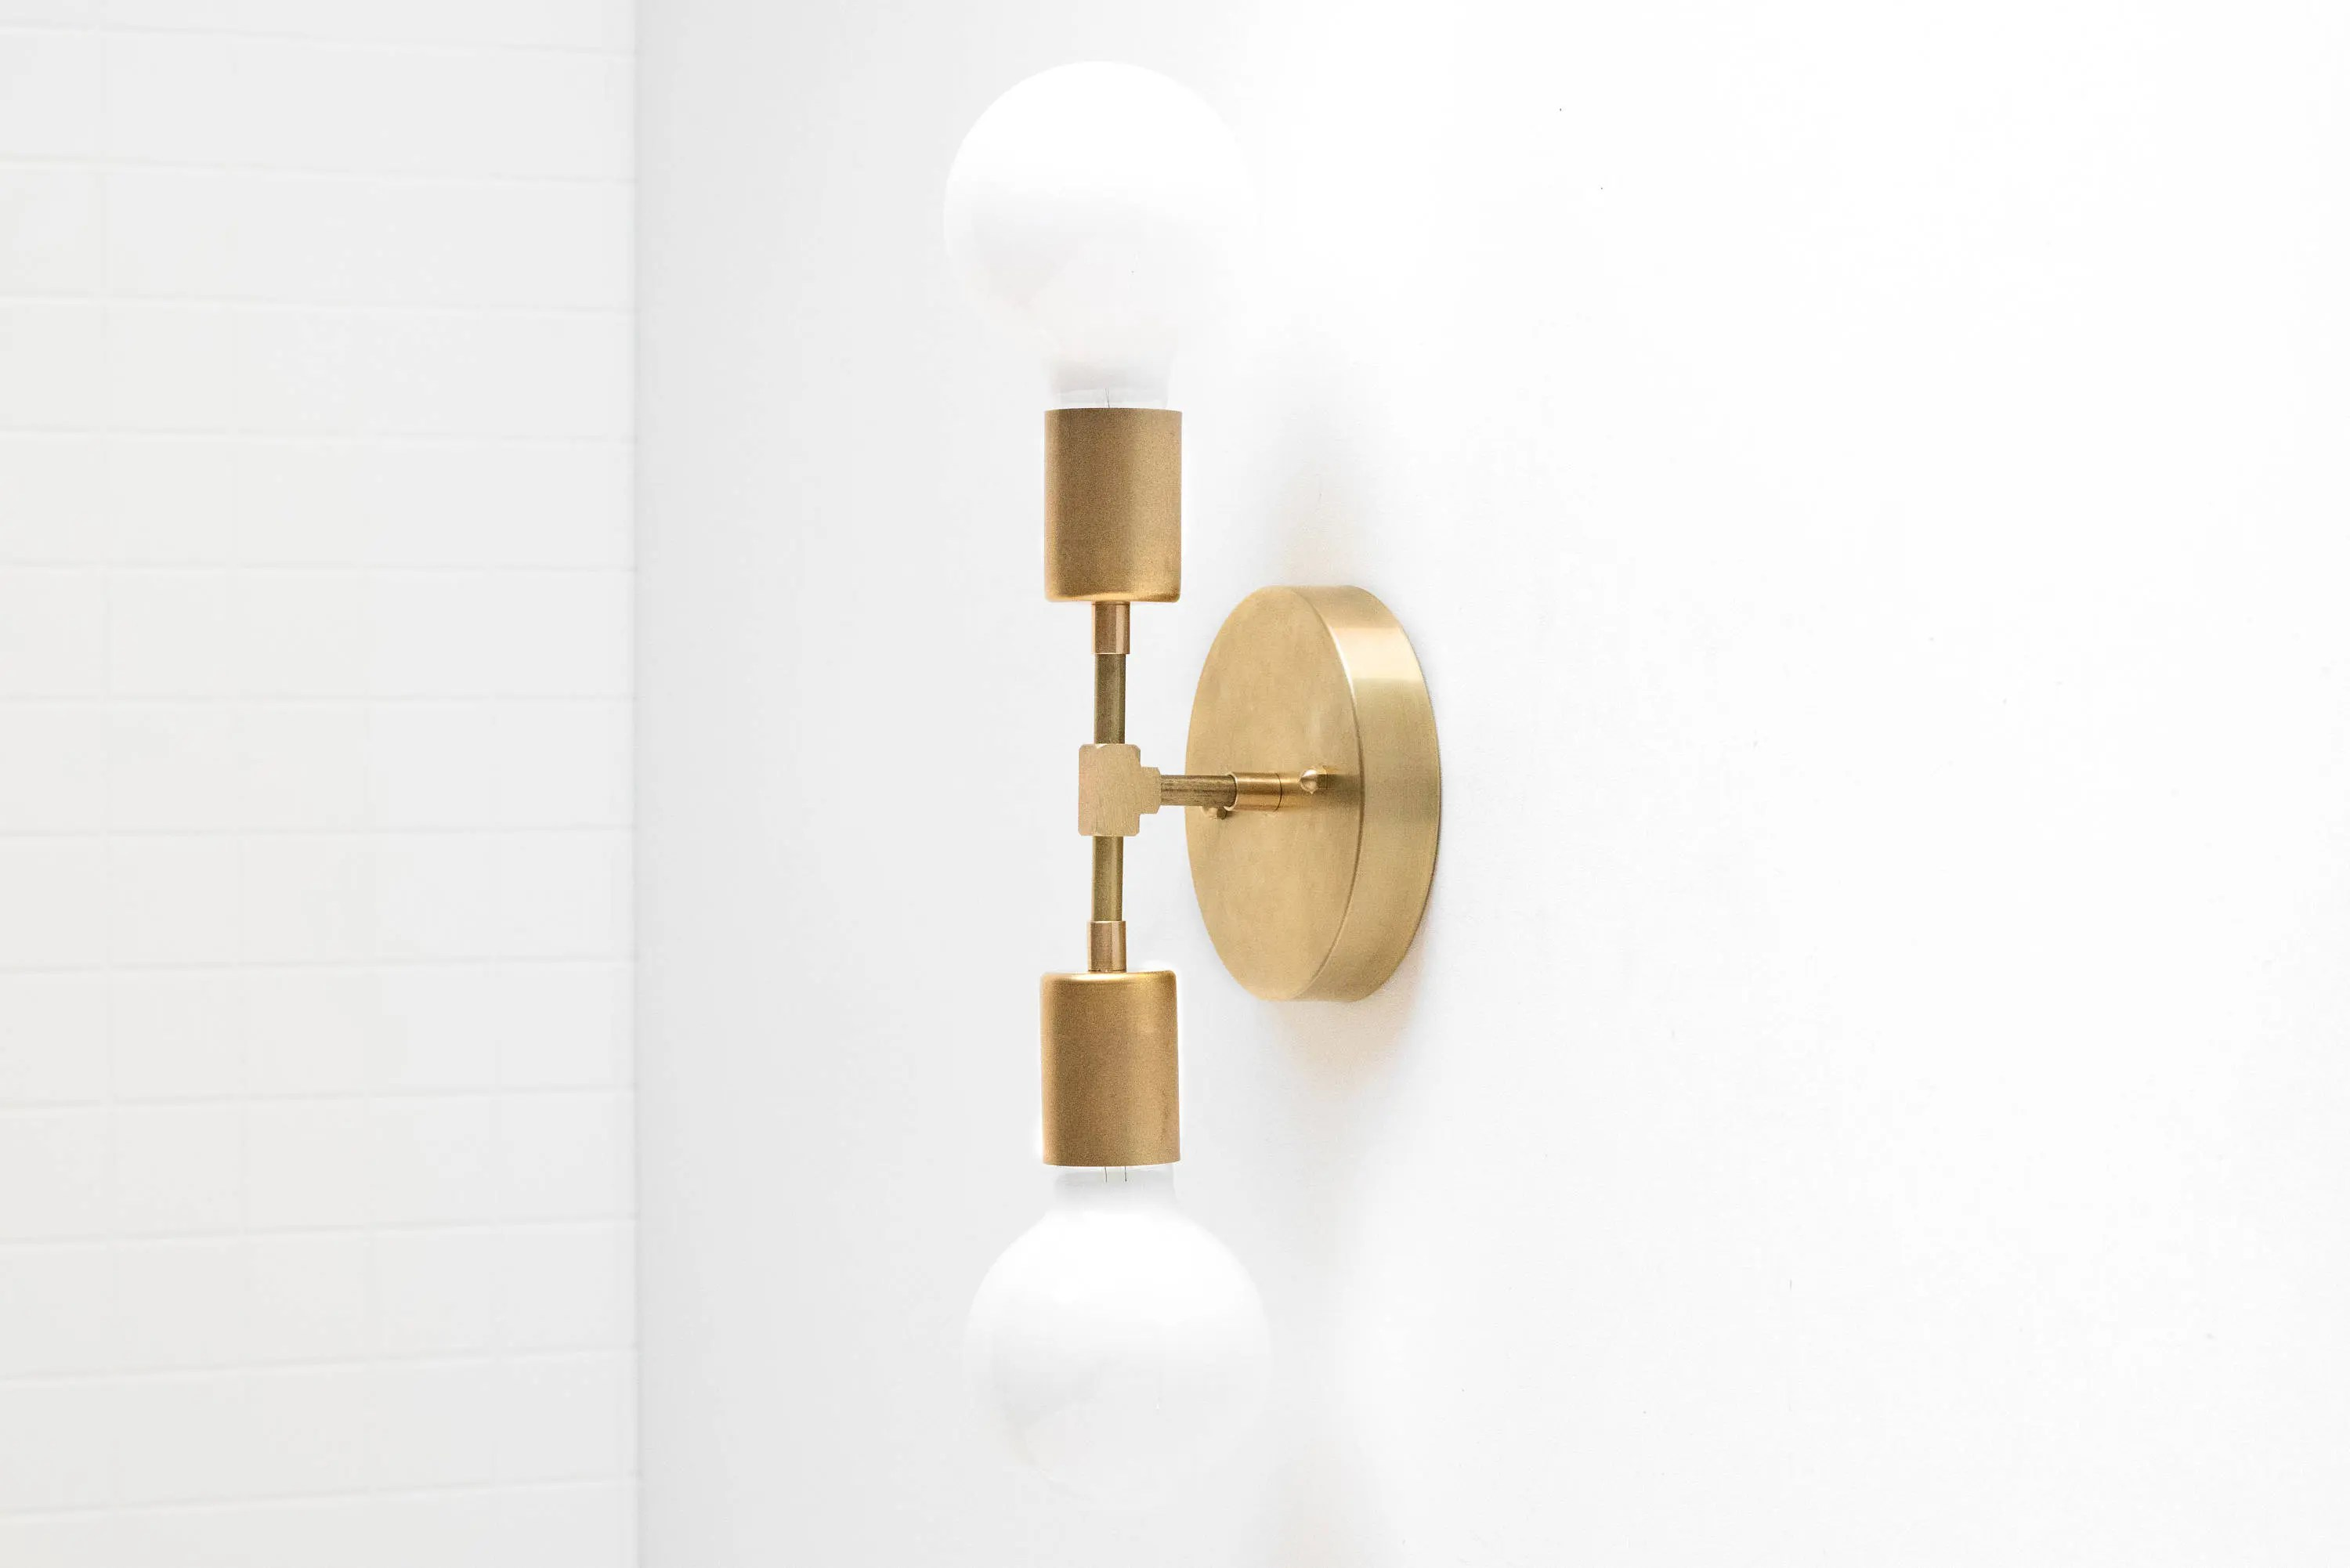 Gold Wall Sconce Modern Wall Lamp Industrial Light Bare on Bathroom Wall Sconce Lighting id=51114